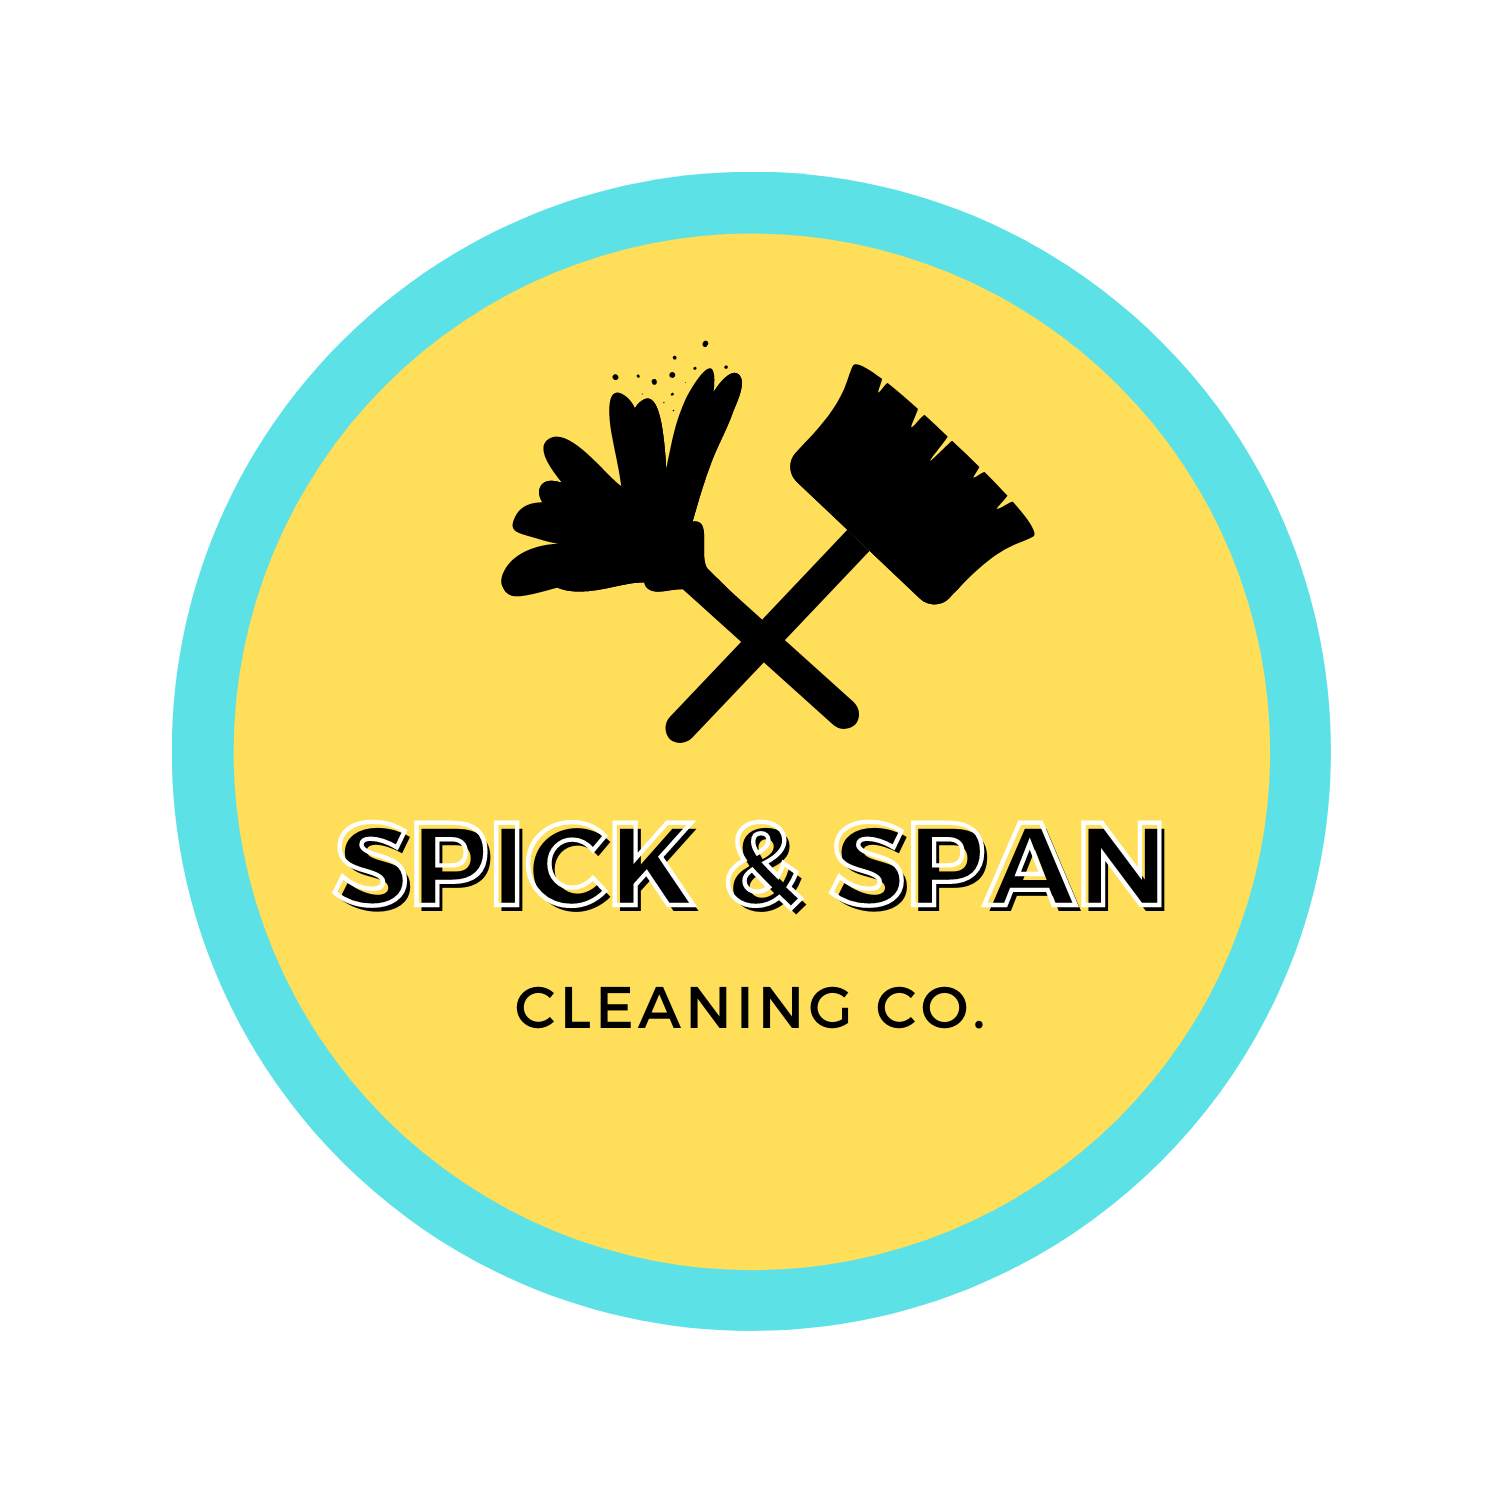 Spick & Span Cleaning Co.